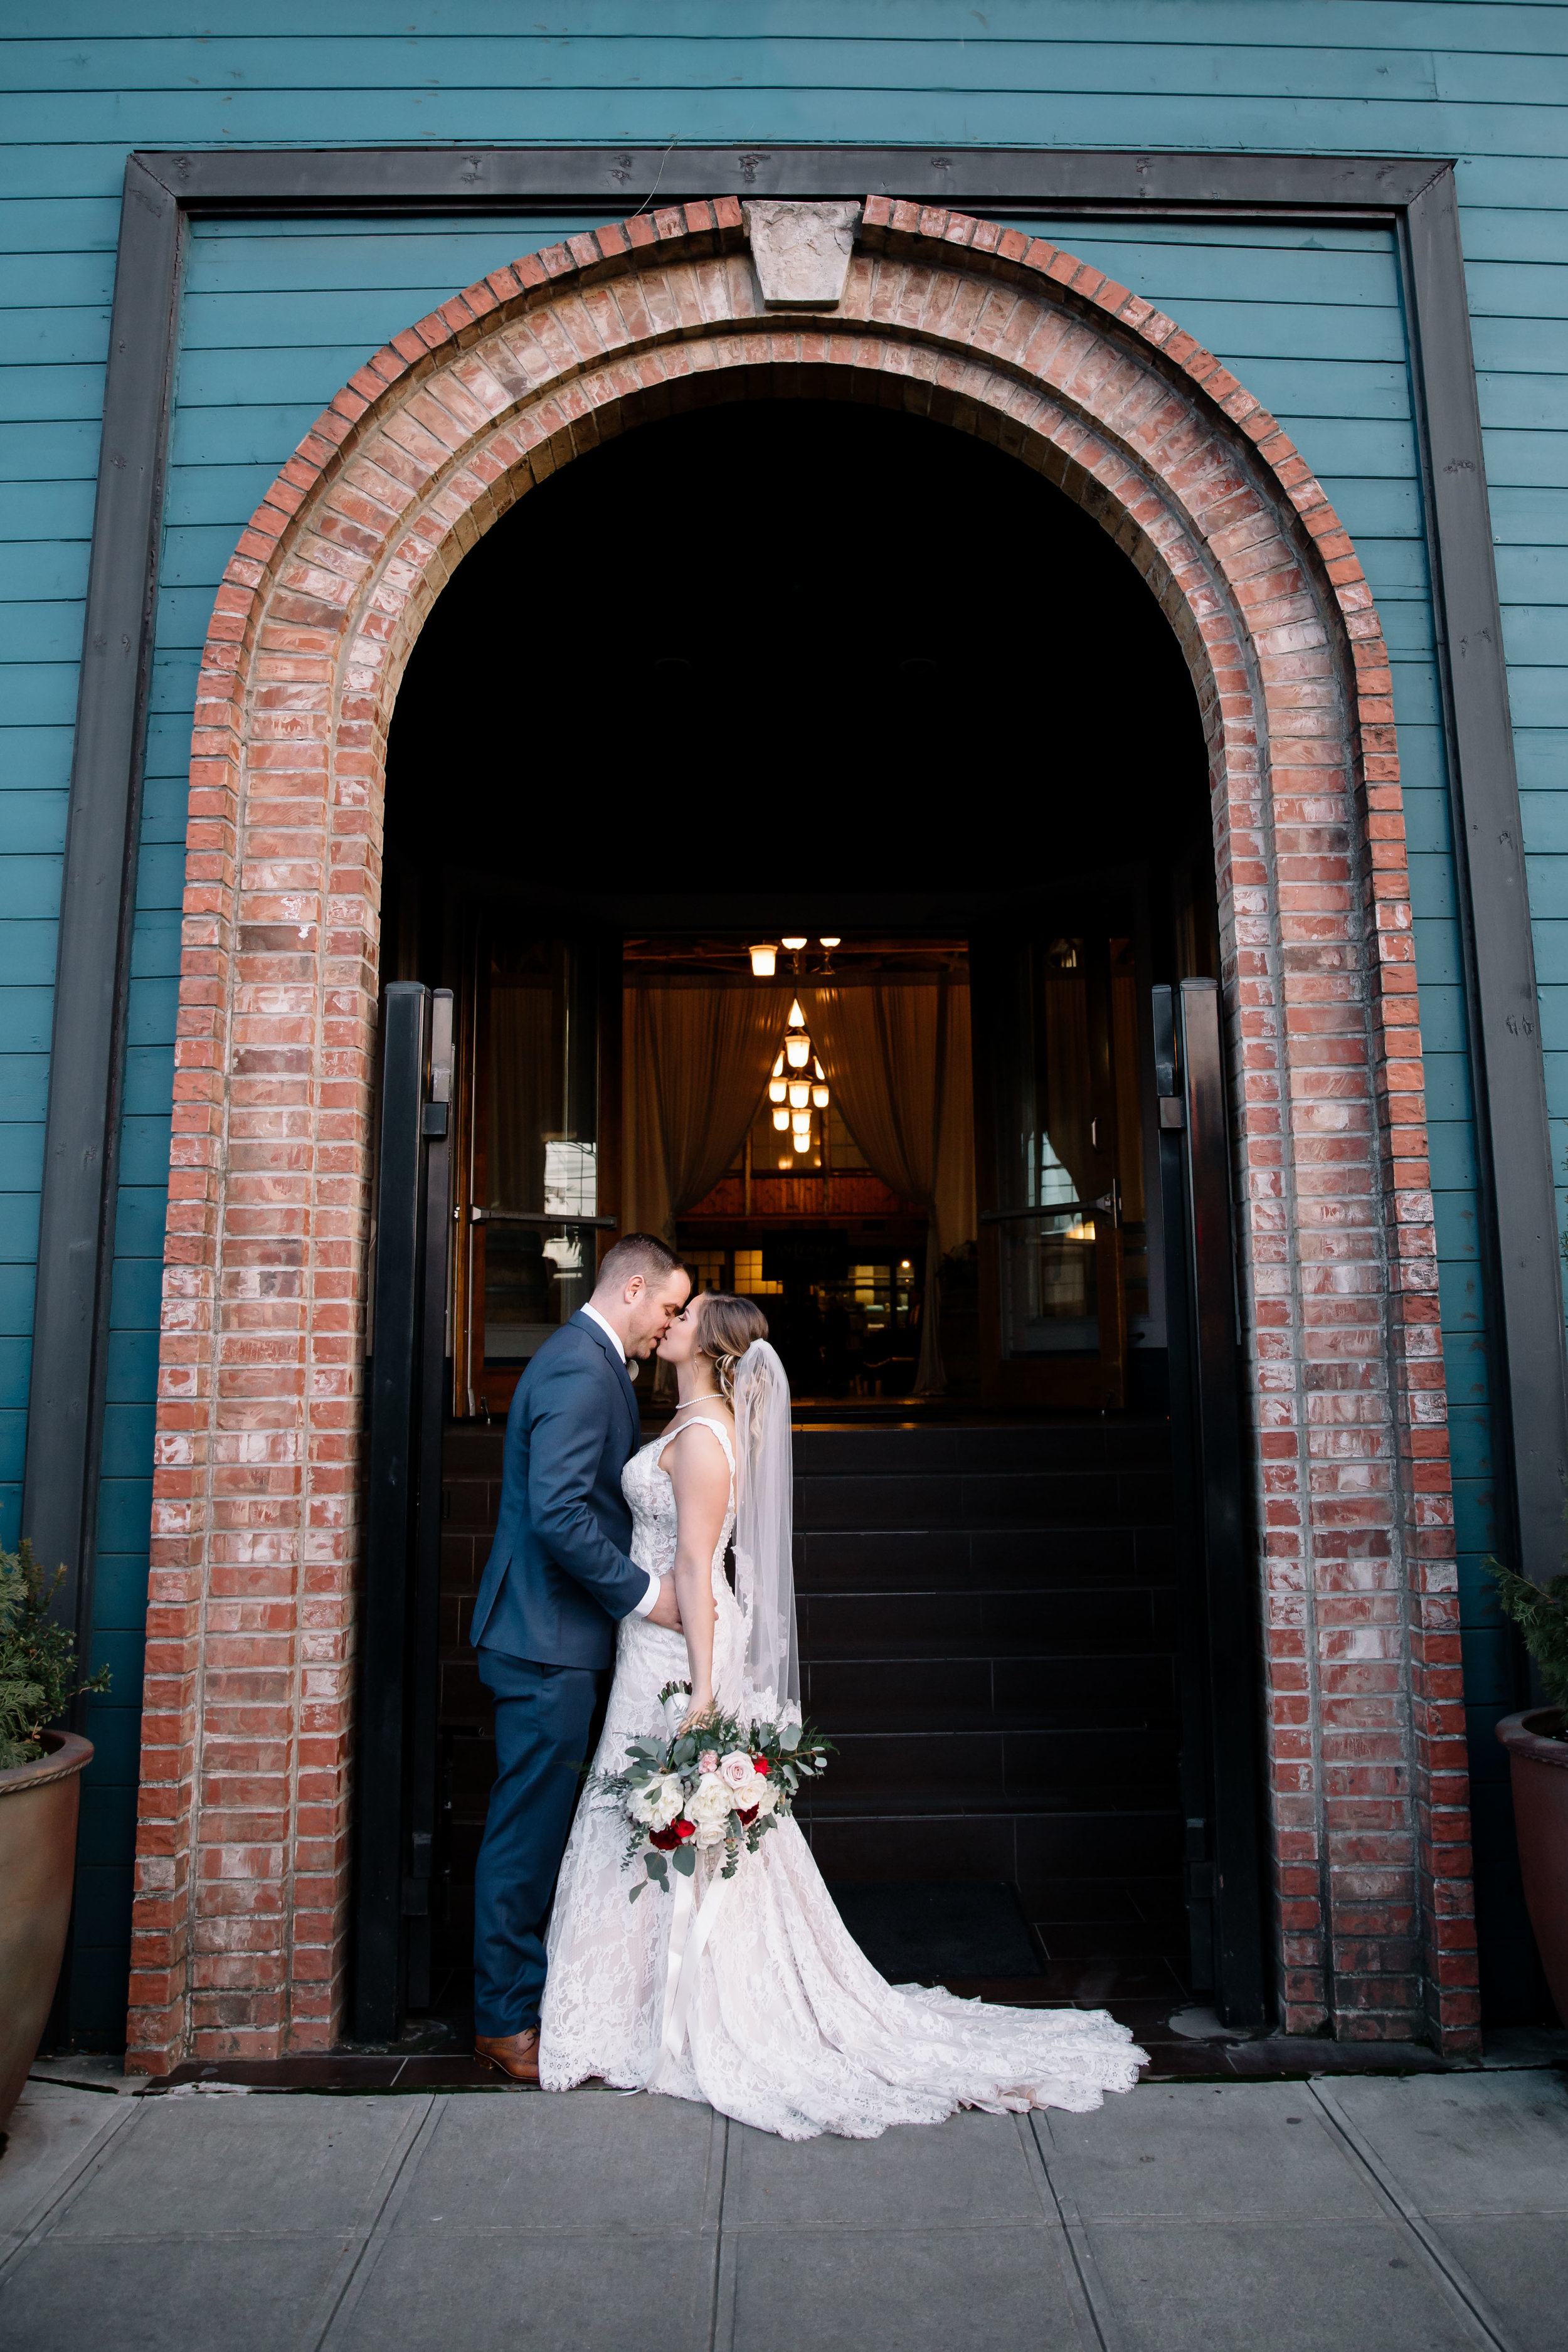 Ben and Alyssa  - I loved shooting this couples NYE wedding. Sodo Park was such an incredible venue, their friends were hilarious and they were the perfect models. The best thing about this job is it never feels like work and all I do is make friends. In my first year as a professional photographer, this couple took a chance on me and I'm so glad they did.